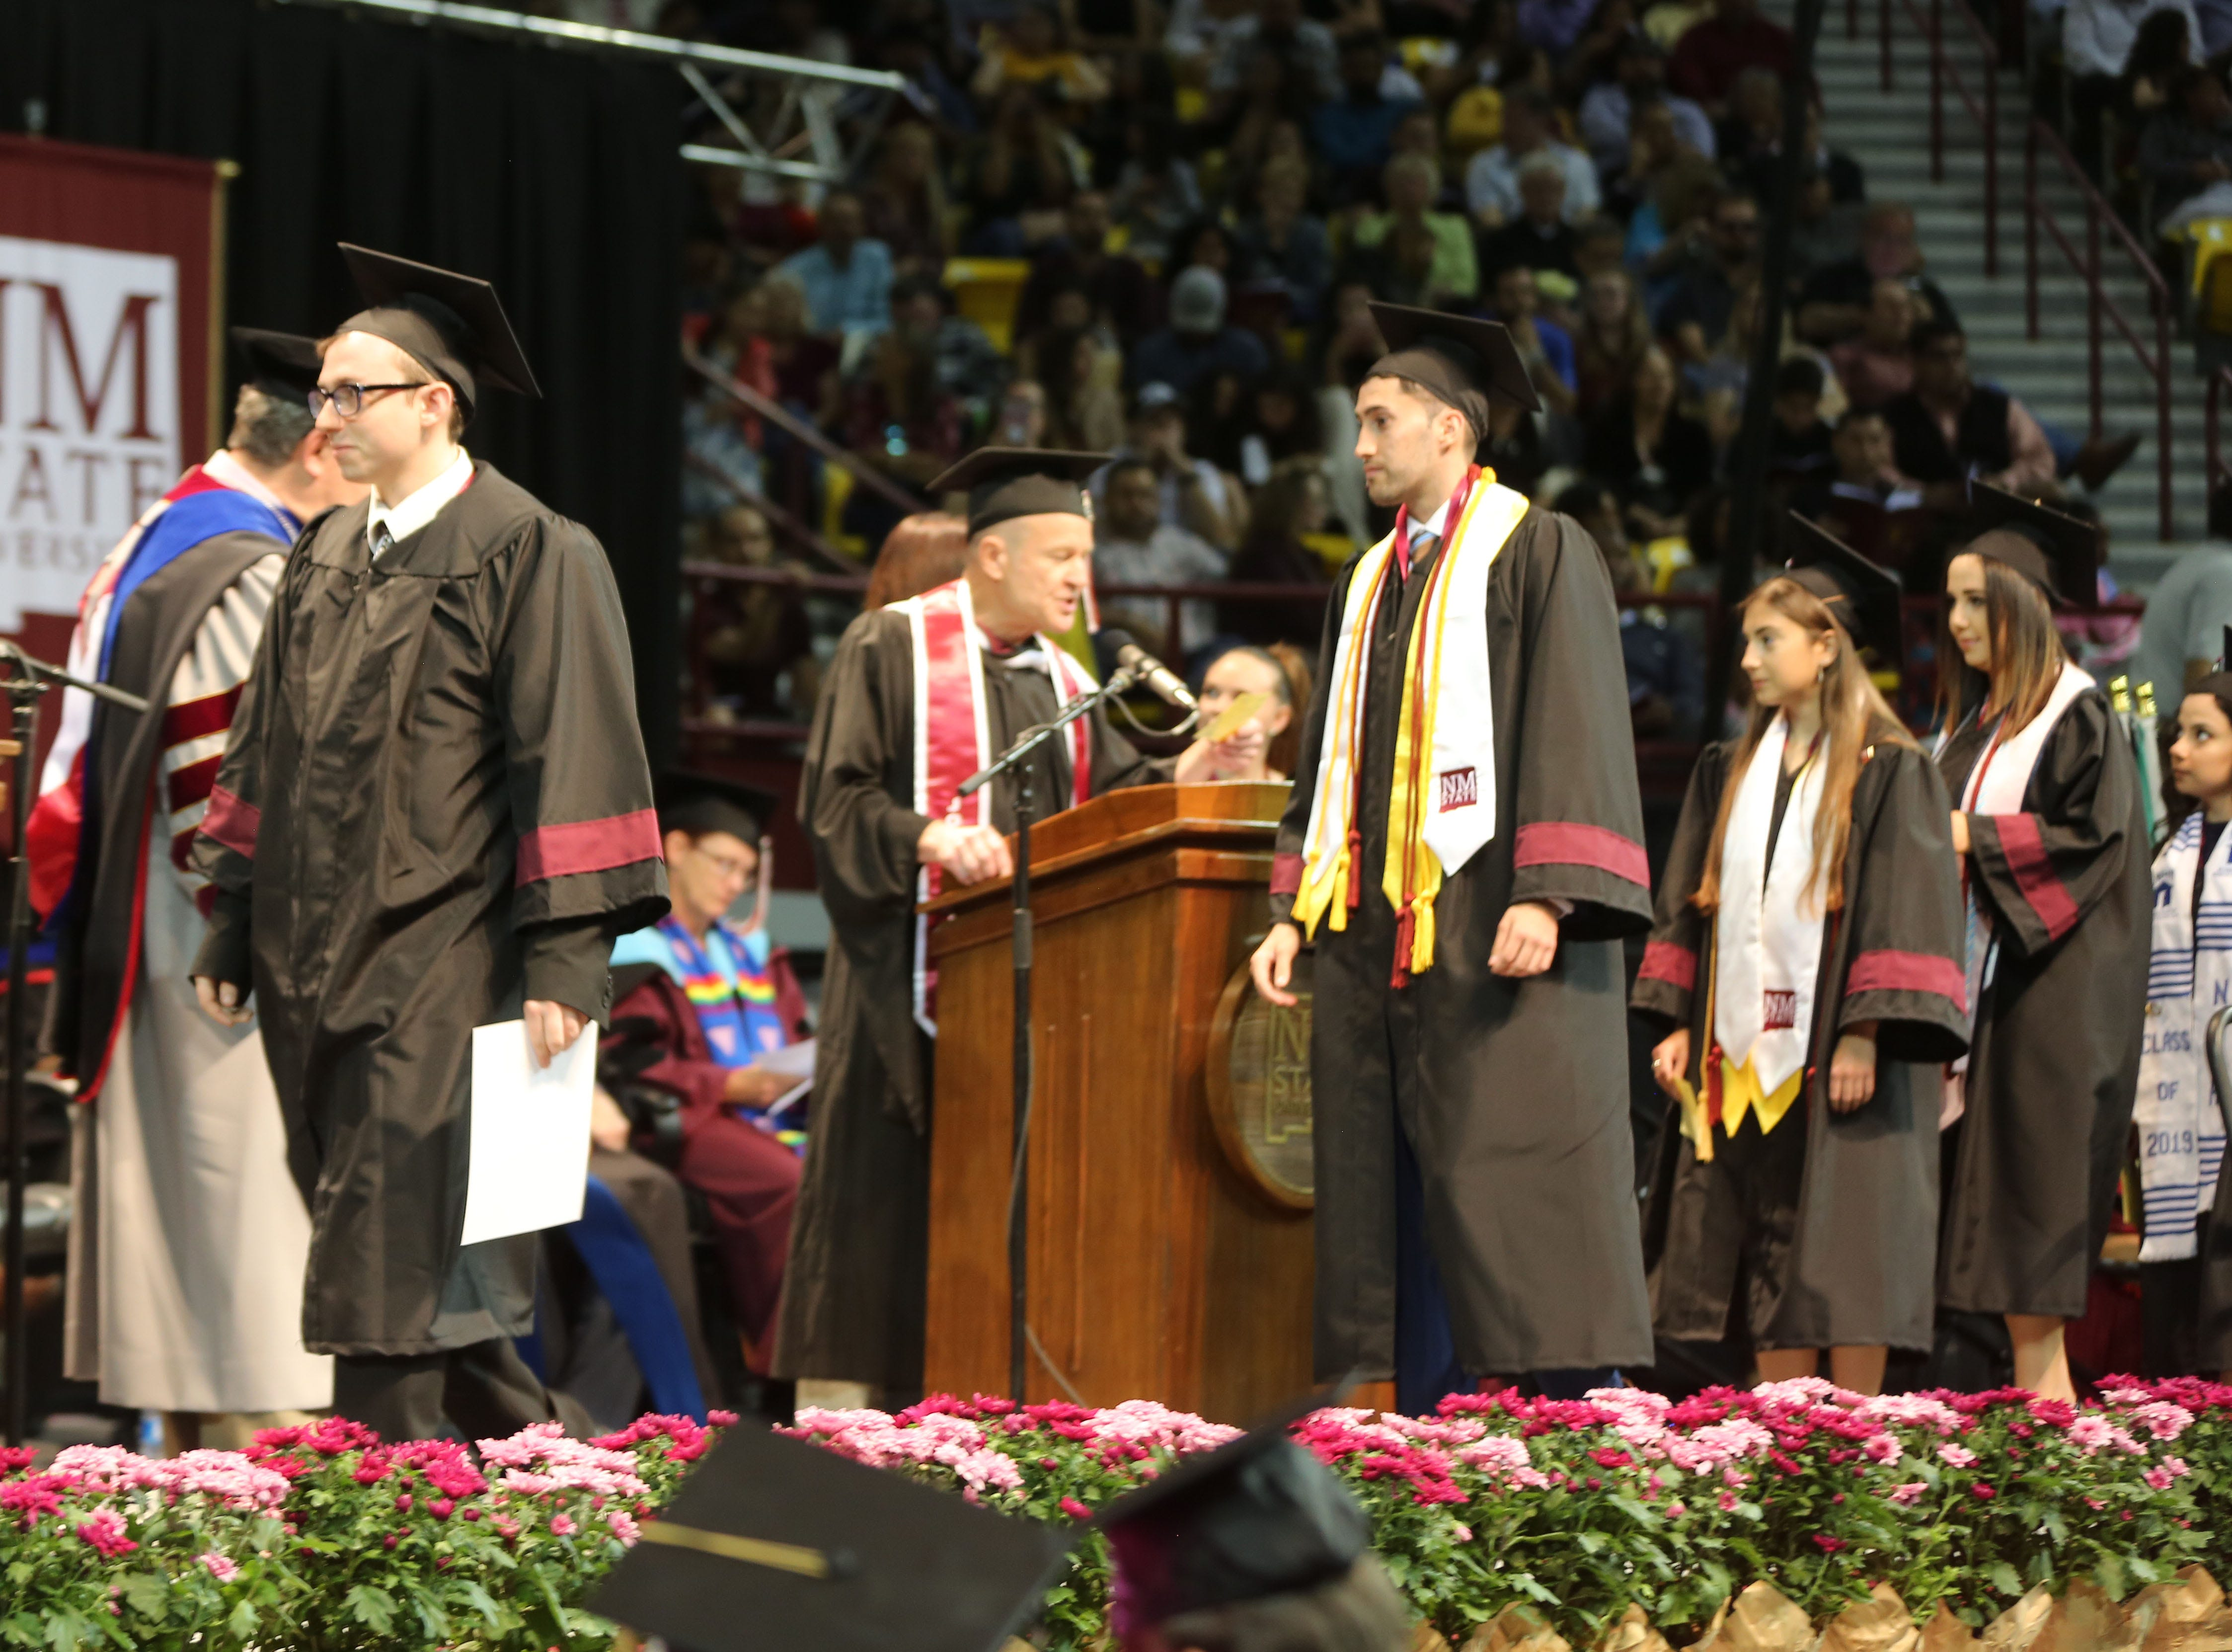 The Agricultural, Consumer and Environmental Sciences department, awarded 148 degrees this year. Students accepted their degrees Saturday May 11, 2019.